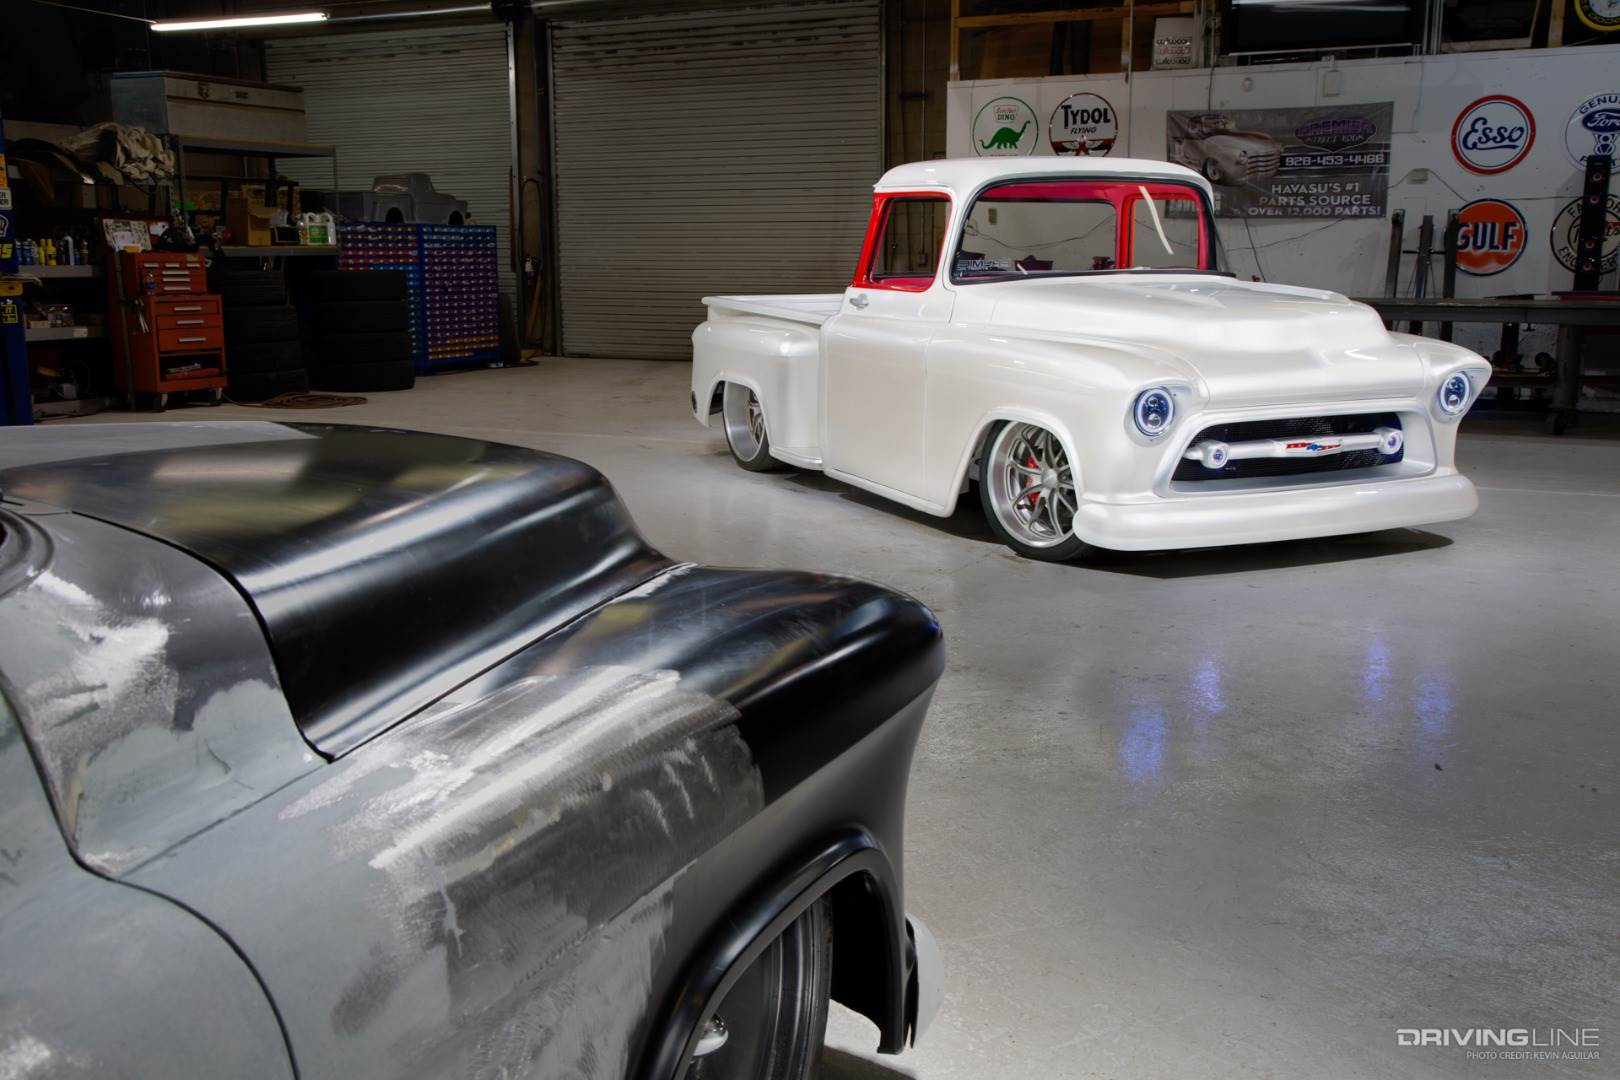 White lowered truck next to silver truck